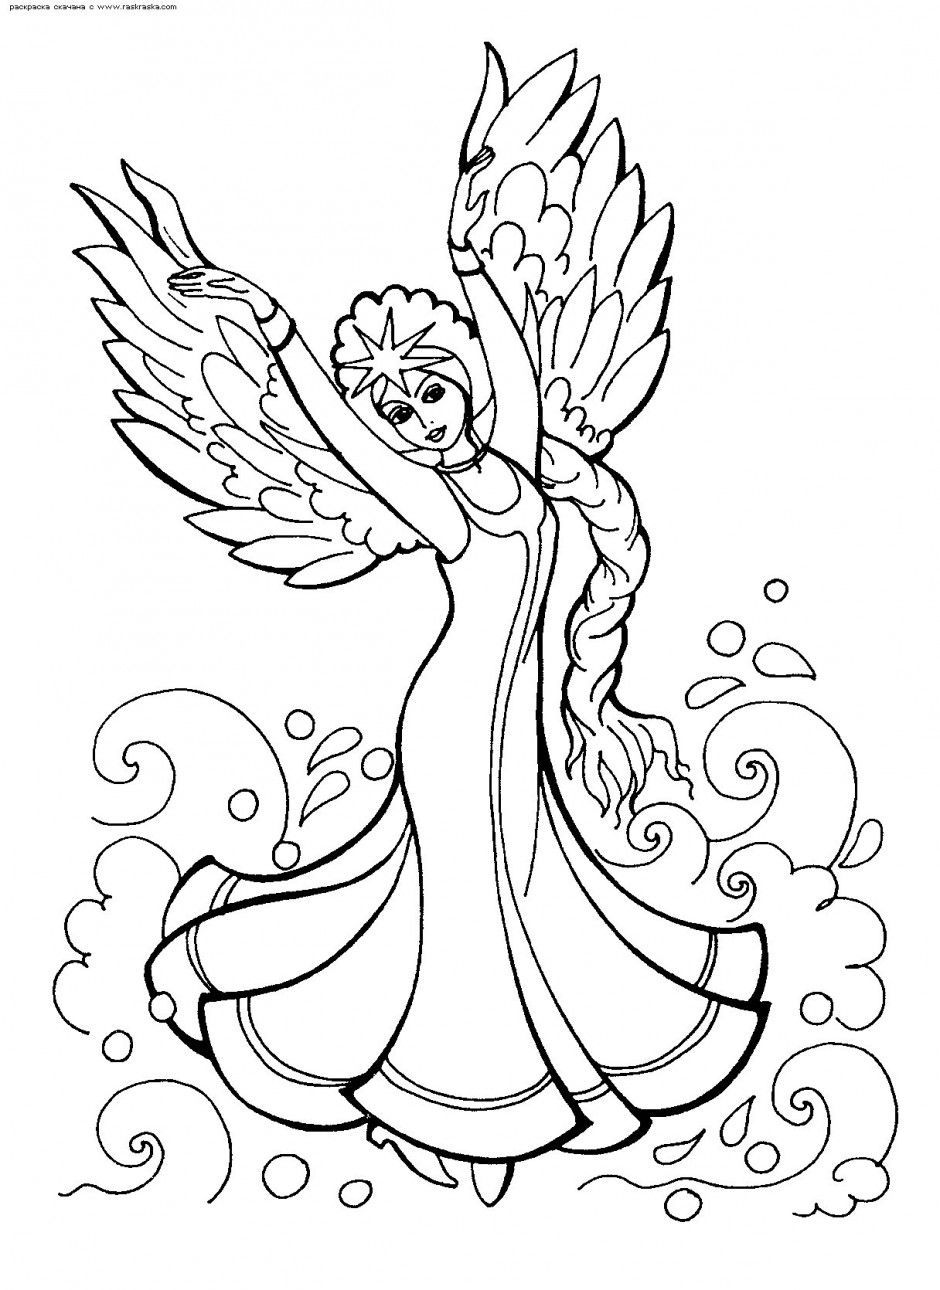 russian folk art coloring pages - photo#7